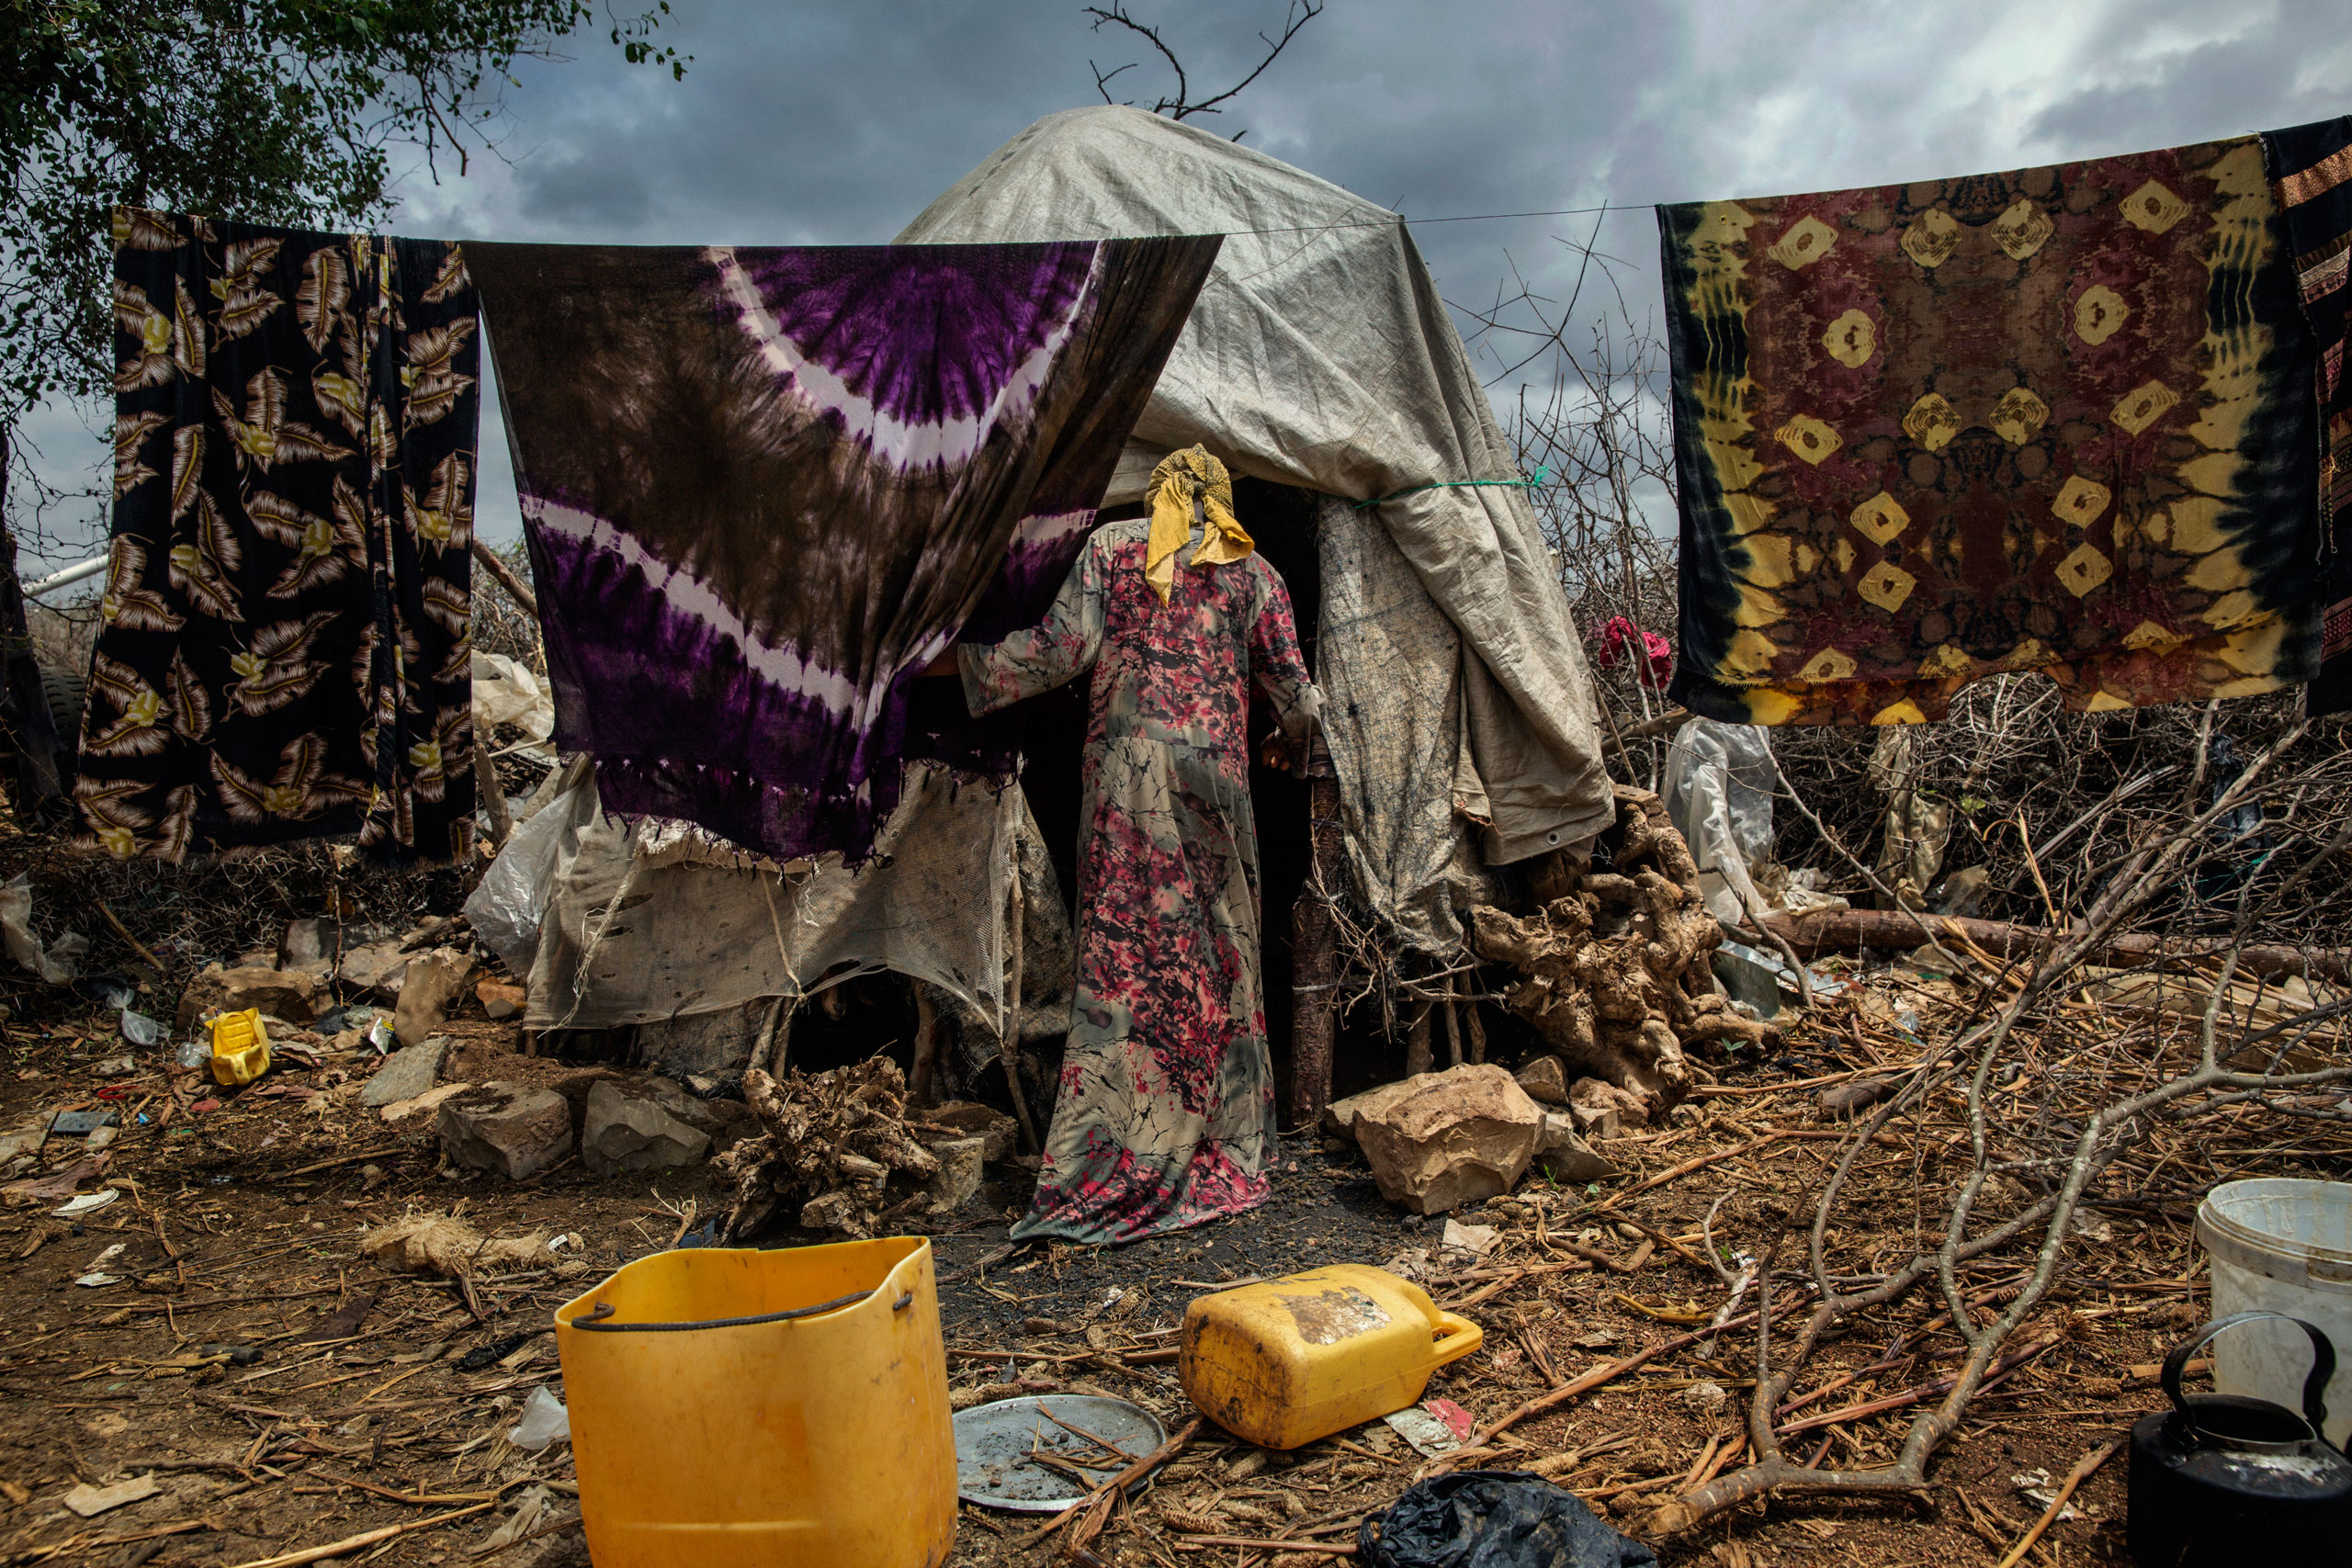 An internally displaced Somali woman walks inside a makeshift camp in Baidoa, in the Bay region, 150 miles from Mogadishu, Somalia. The internally displaced families fled to Baidoa town to escape famine in the surrounding areas. Baidoa, Somalia. October 14, 2015.